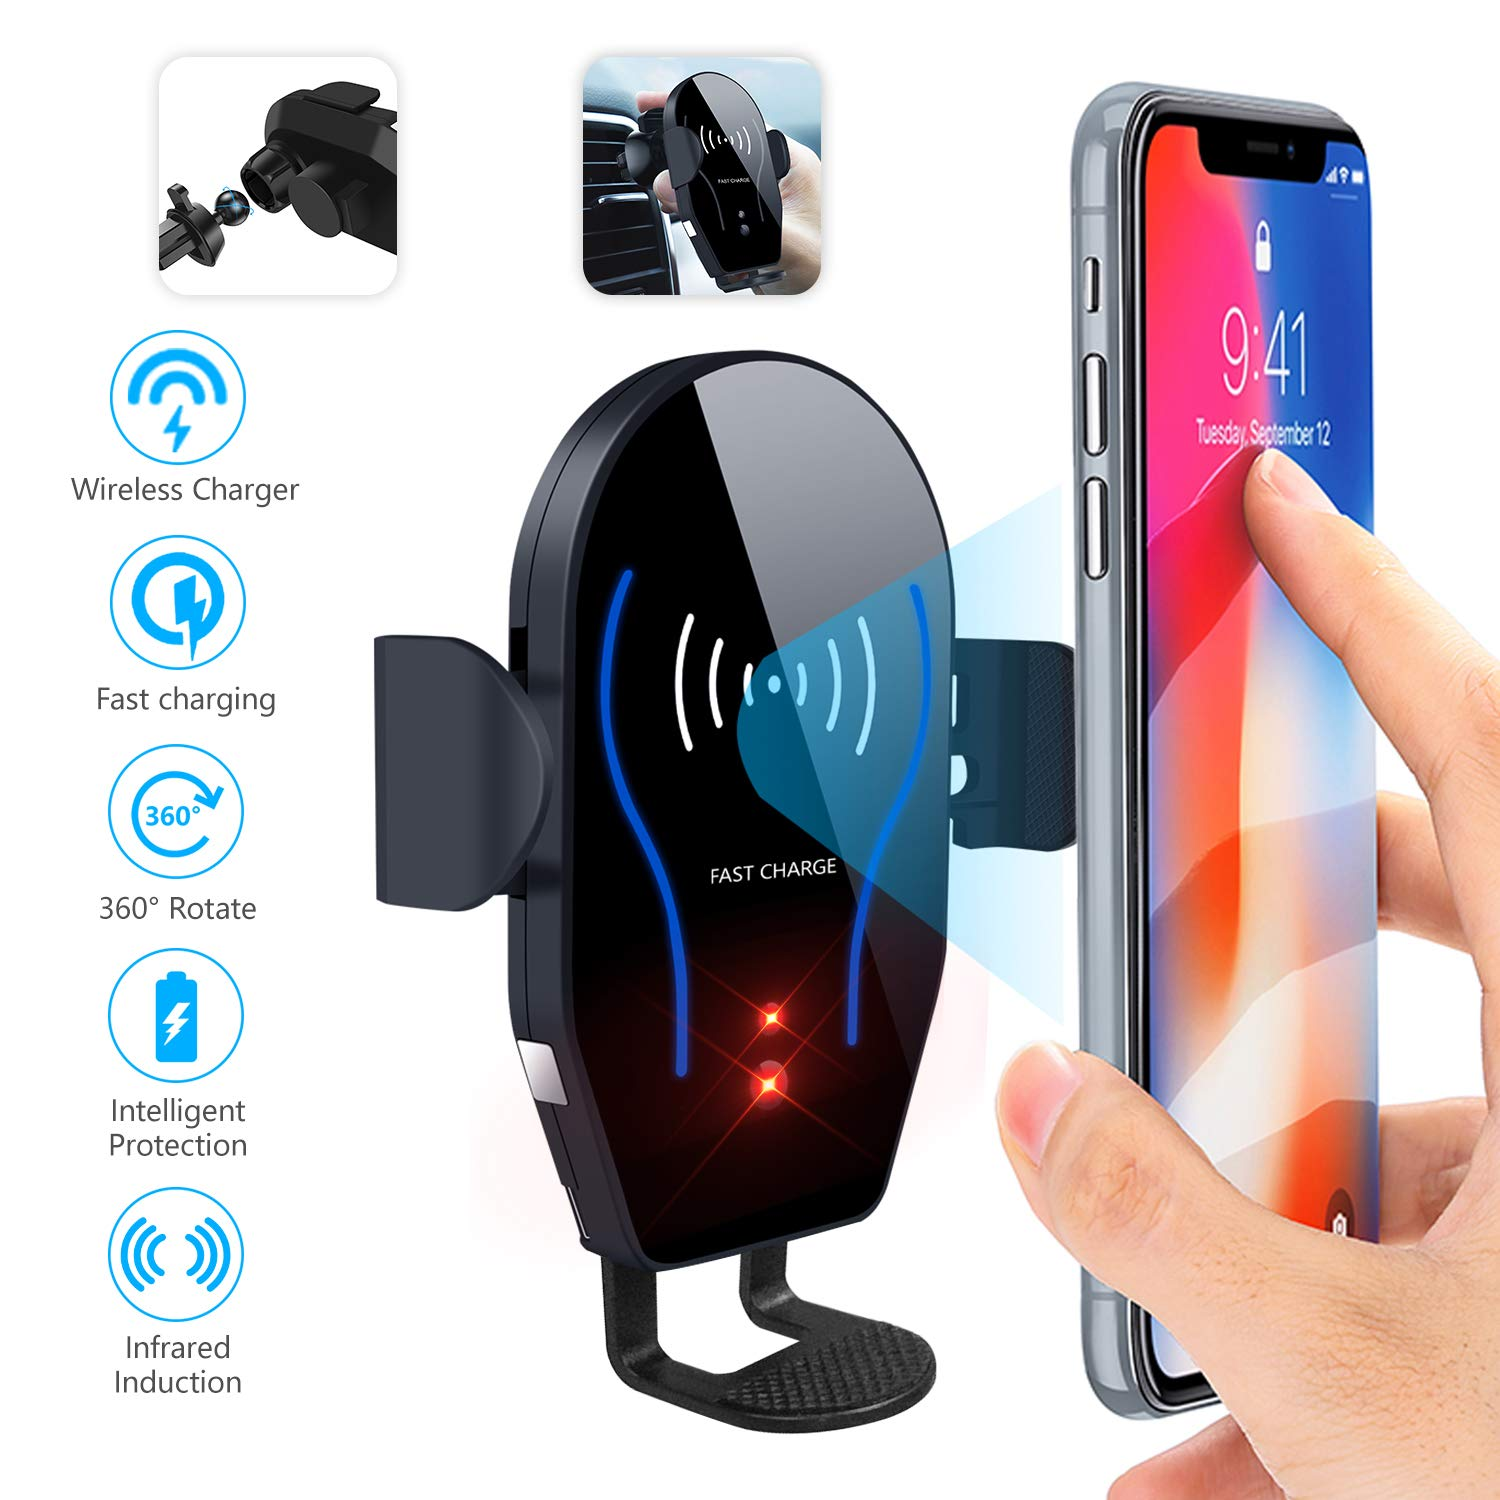 Car Phone Mount Air Vent Automatic Clamping Cell Phone Holder for Car Wireless Charger Compatible With iPhone Xs Max/XR/XS/X/8 Plus Samsung Galaxy S9/S8/S7/S6 Edge/Note5 & Other Smartphone